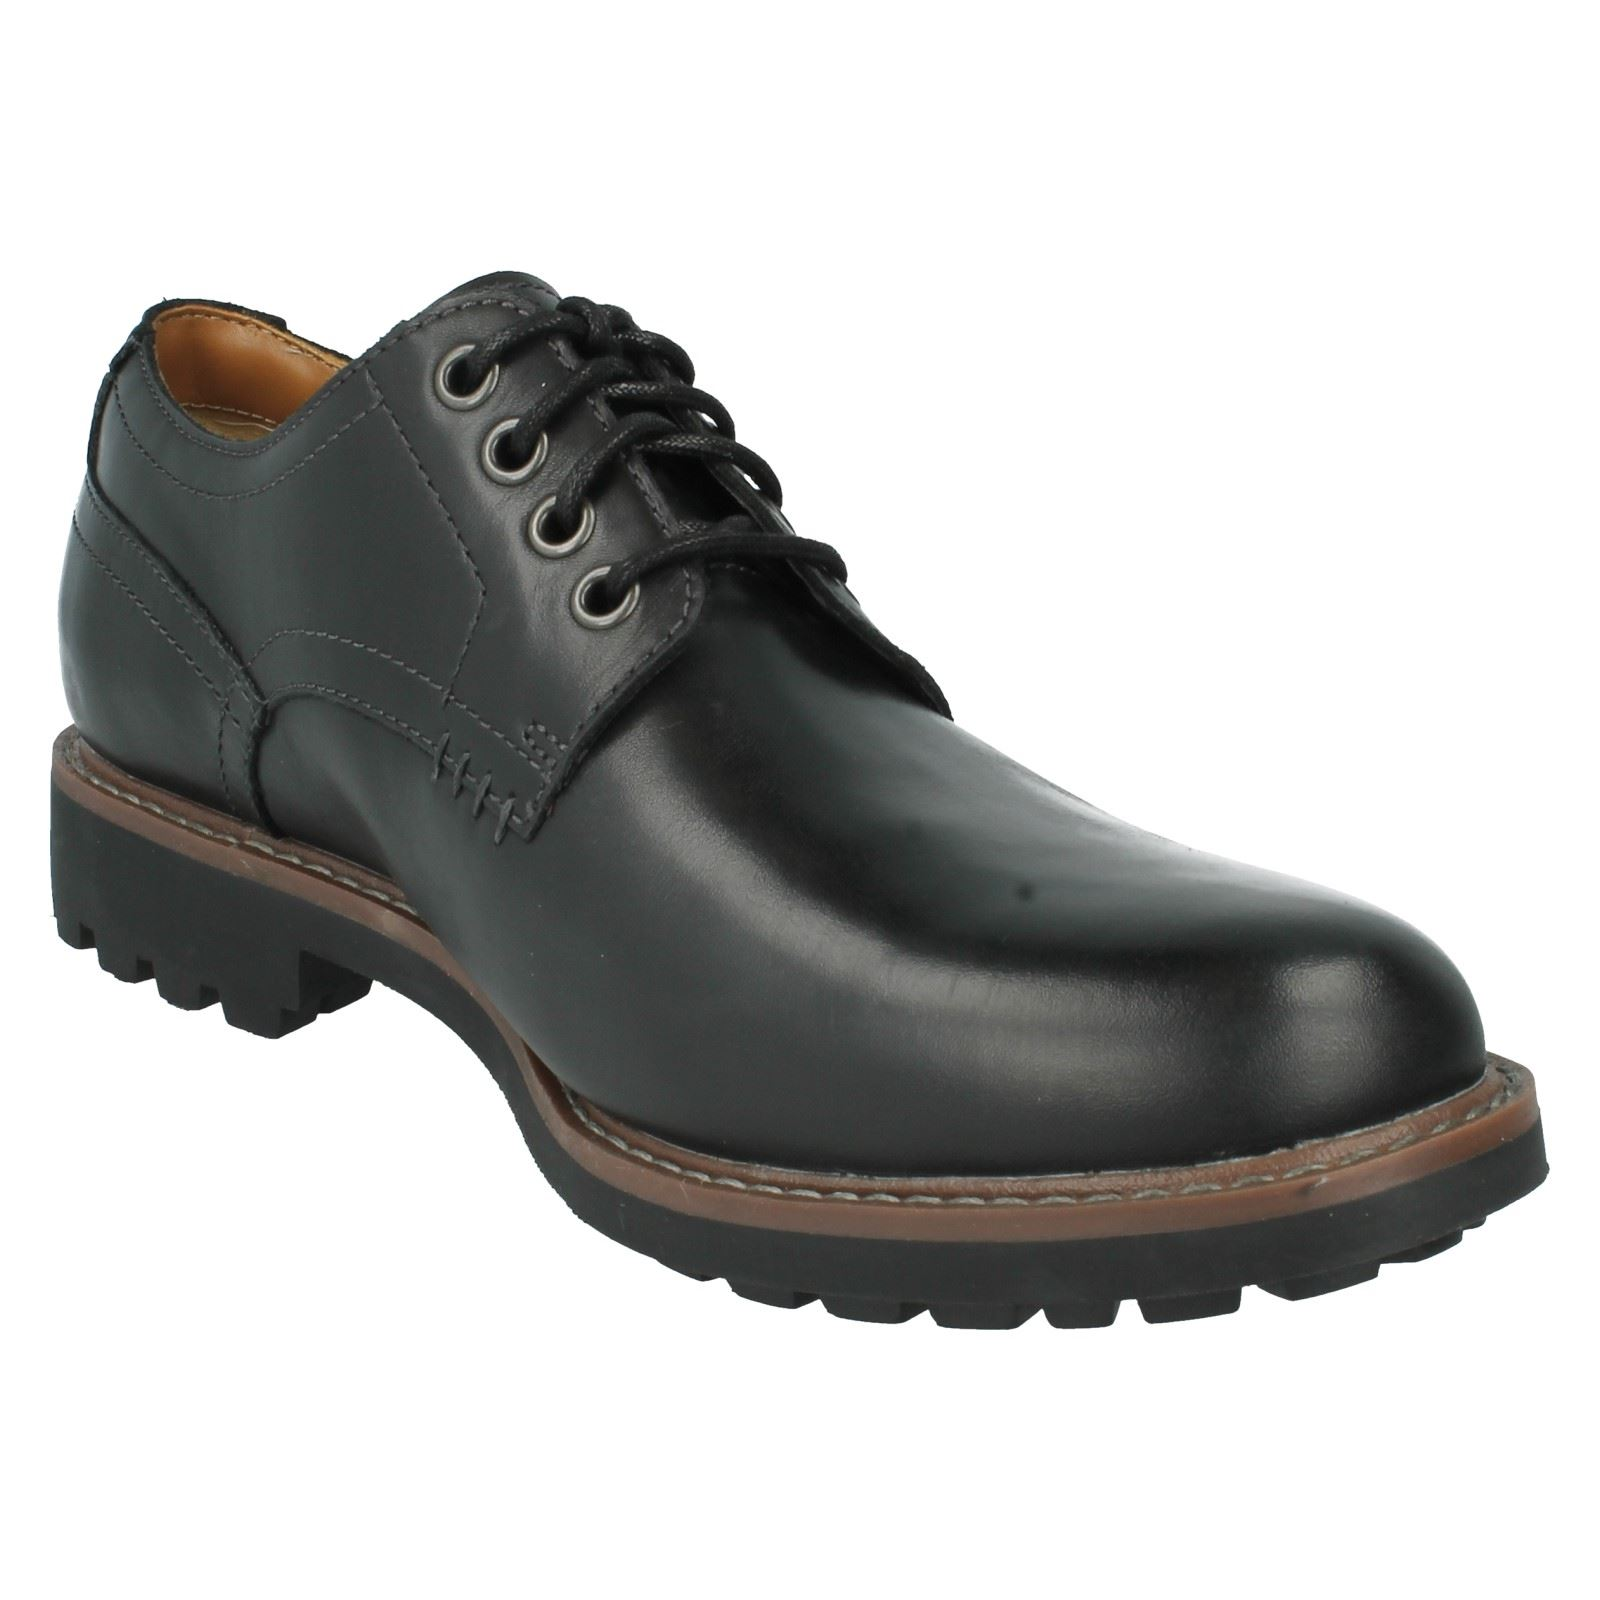 Men's Clarks Casual Lace Up Shoes Montacute Hall